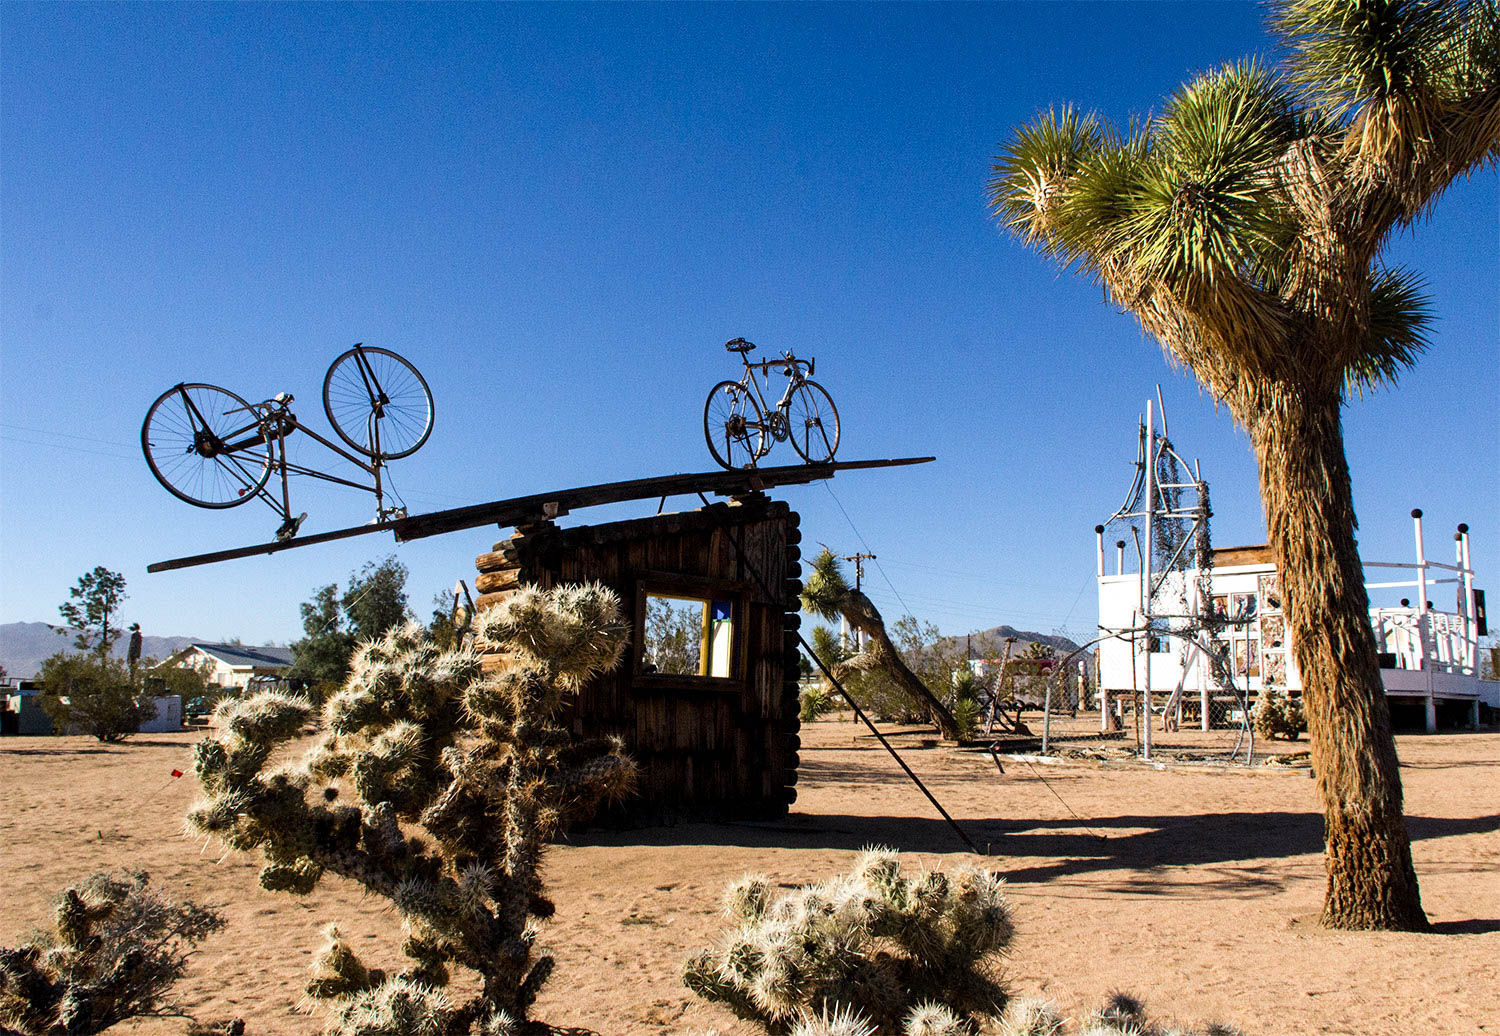 """"""" Purifoy dedicated himself to the found object, and to using art as a tool for social change.He lived the last 15 years of his life creating ten acres of large-scale sculpture on the desert floor.Constructed entirely from junked materials, this otherworldly environment is one of California's great art historical wonders."""" -  Noah Purifoy Foundation"""